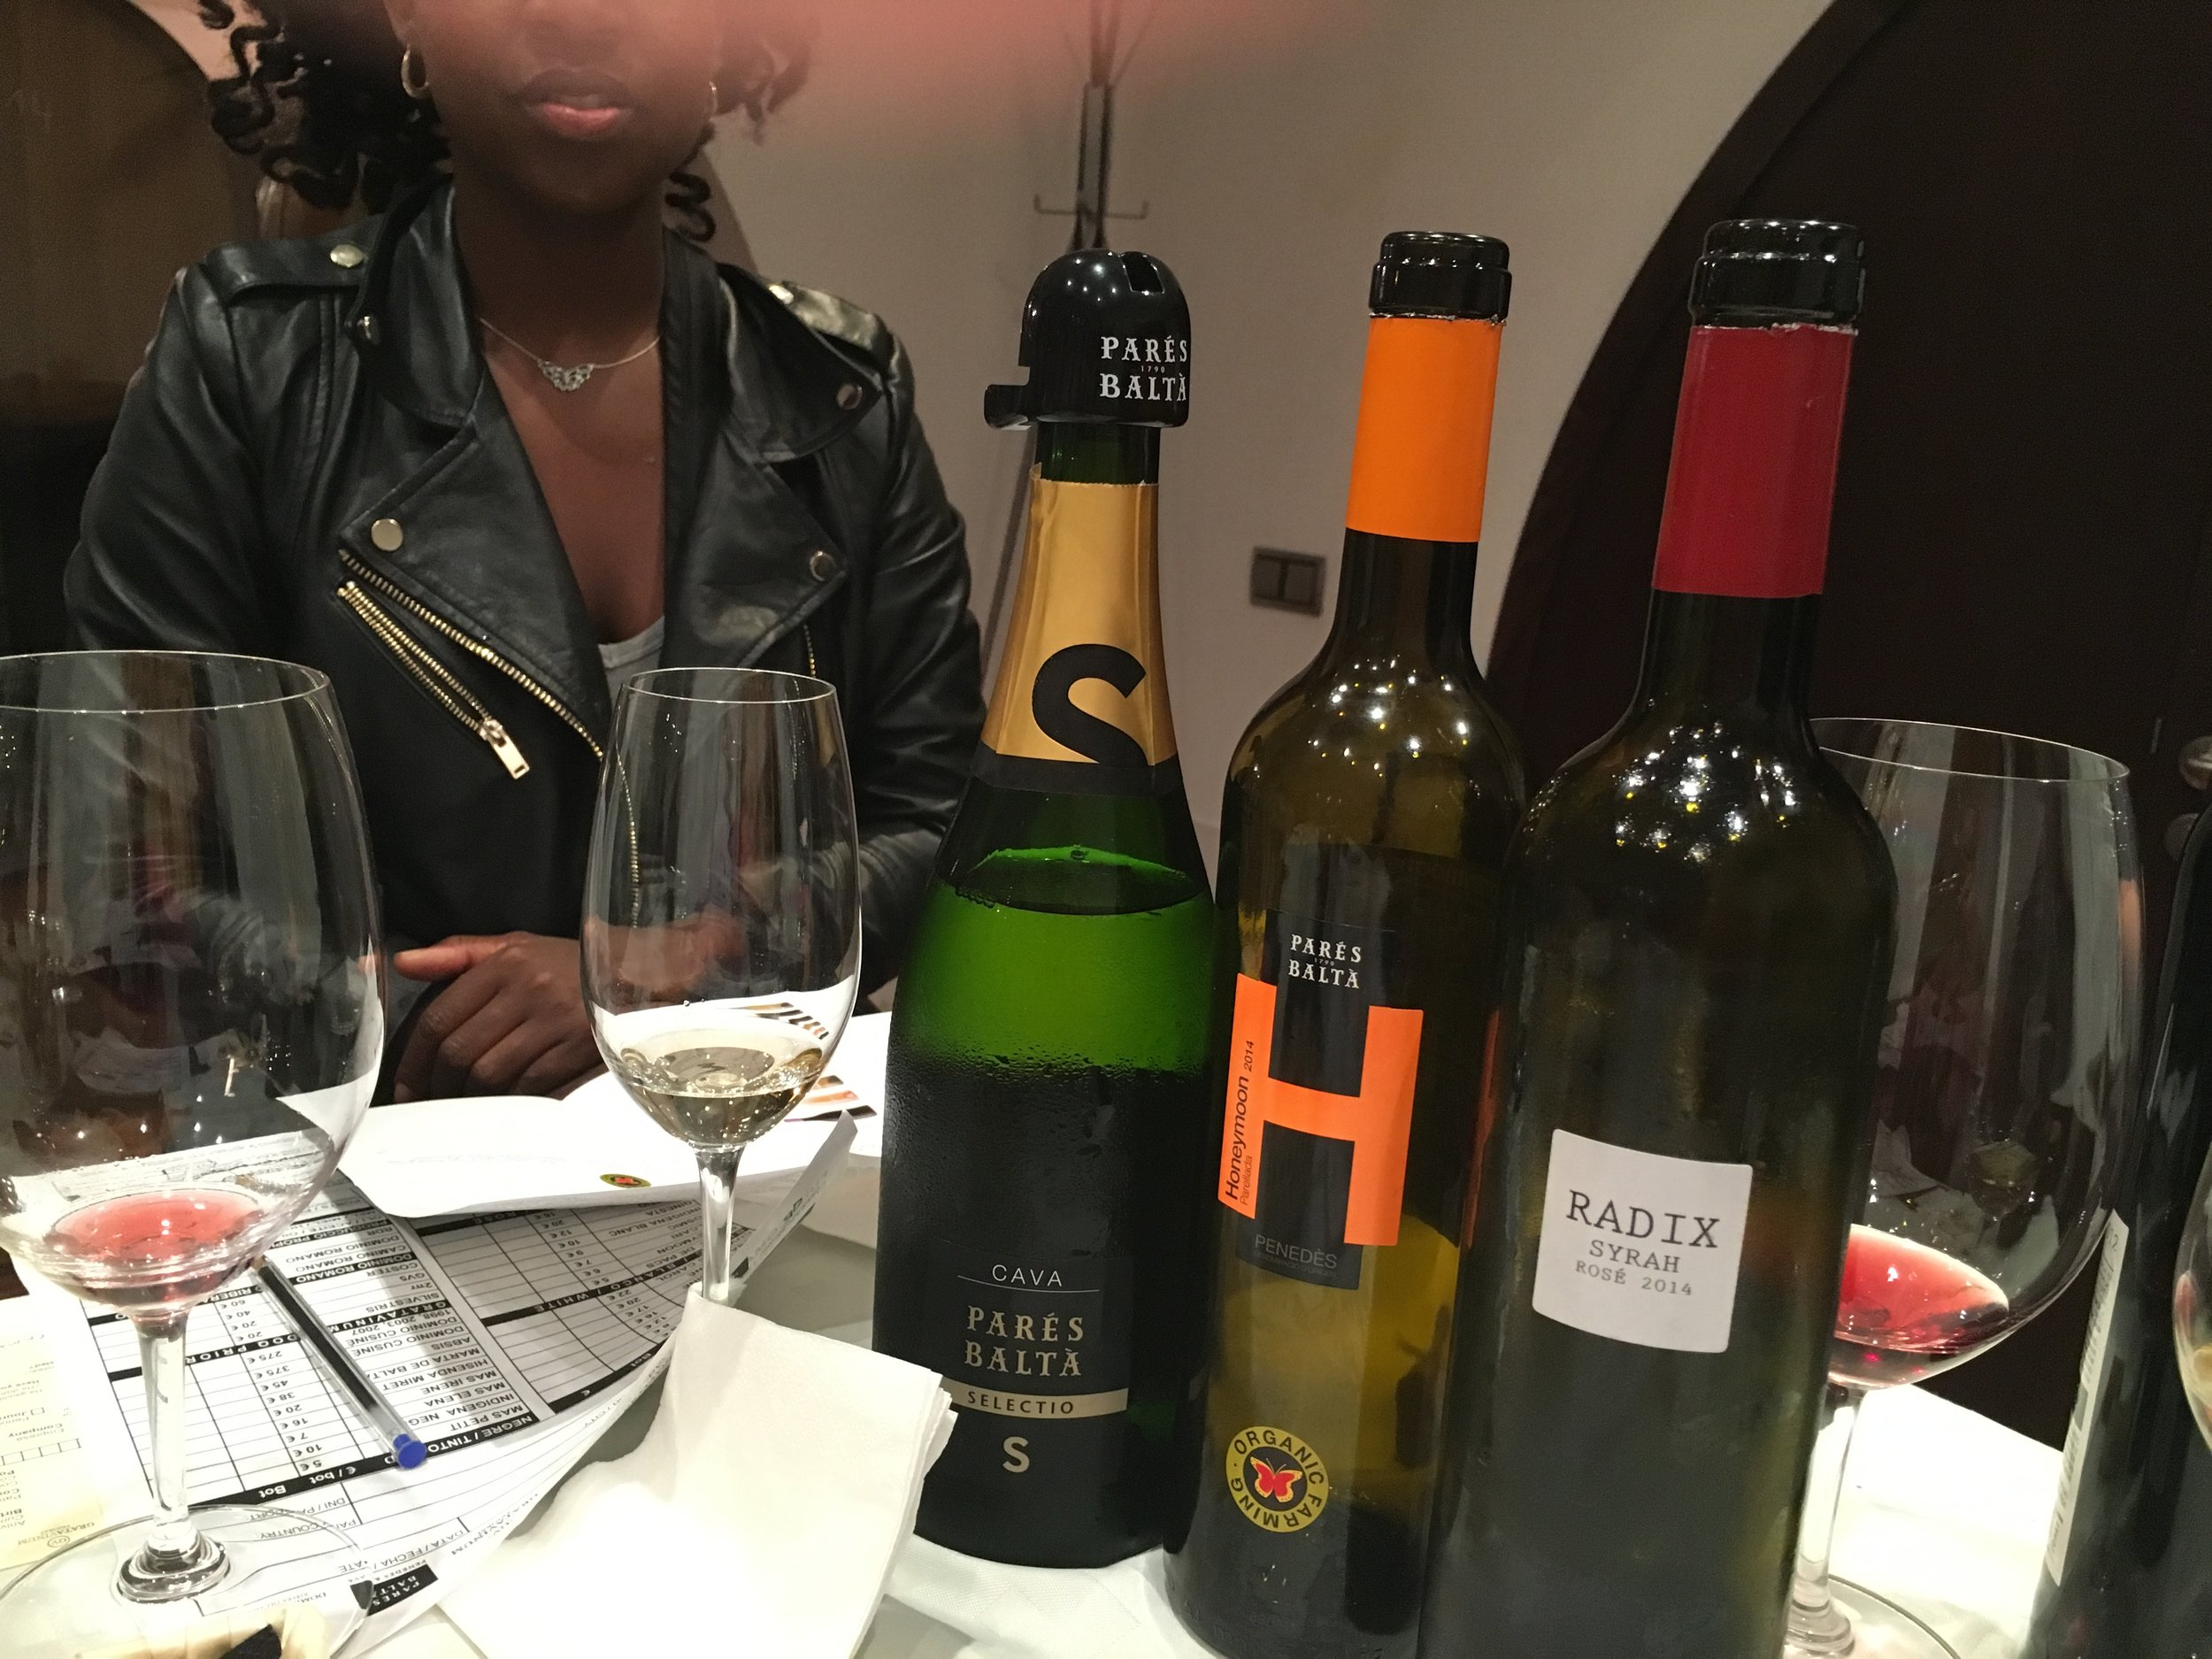 I ordered several bottles of the wine from he Parés Balta tour. The wine arrived just in time for Thanksgiving. I was looking forward to it and found out I was pregnant! :-) No wine for me!!!!